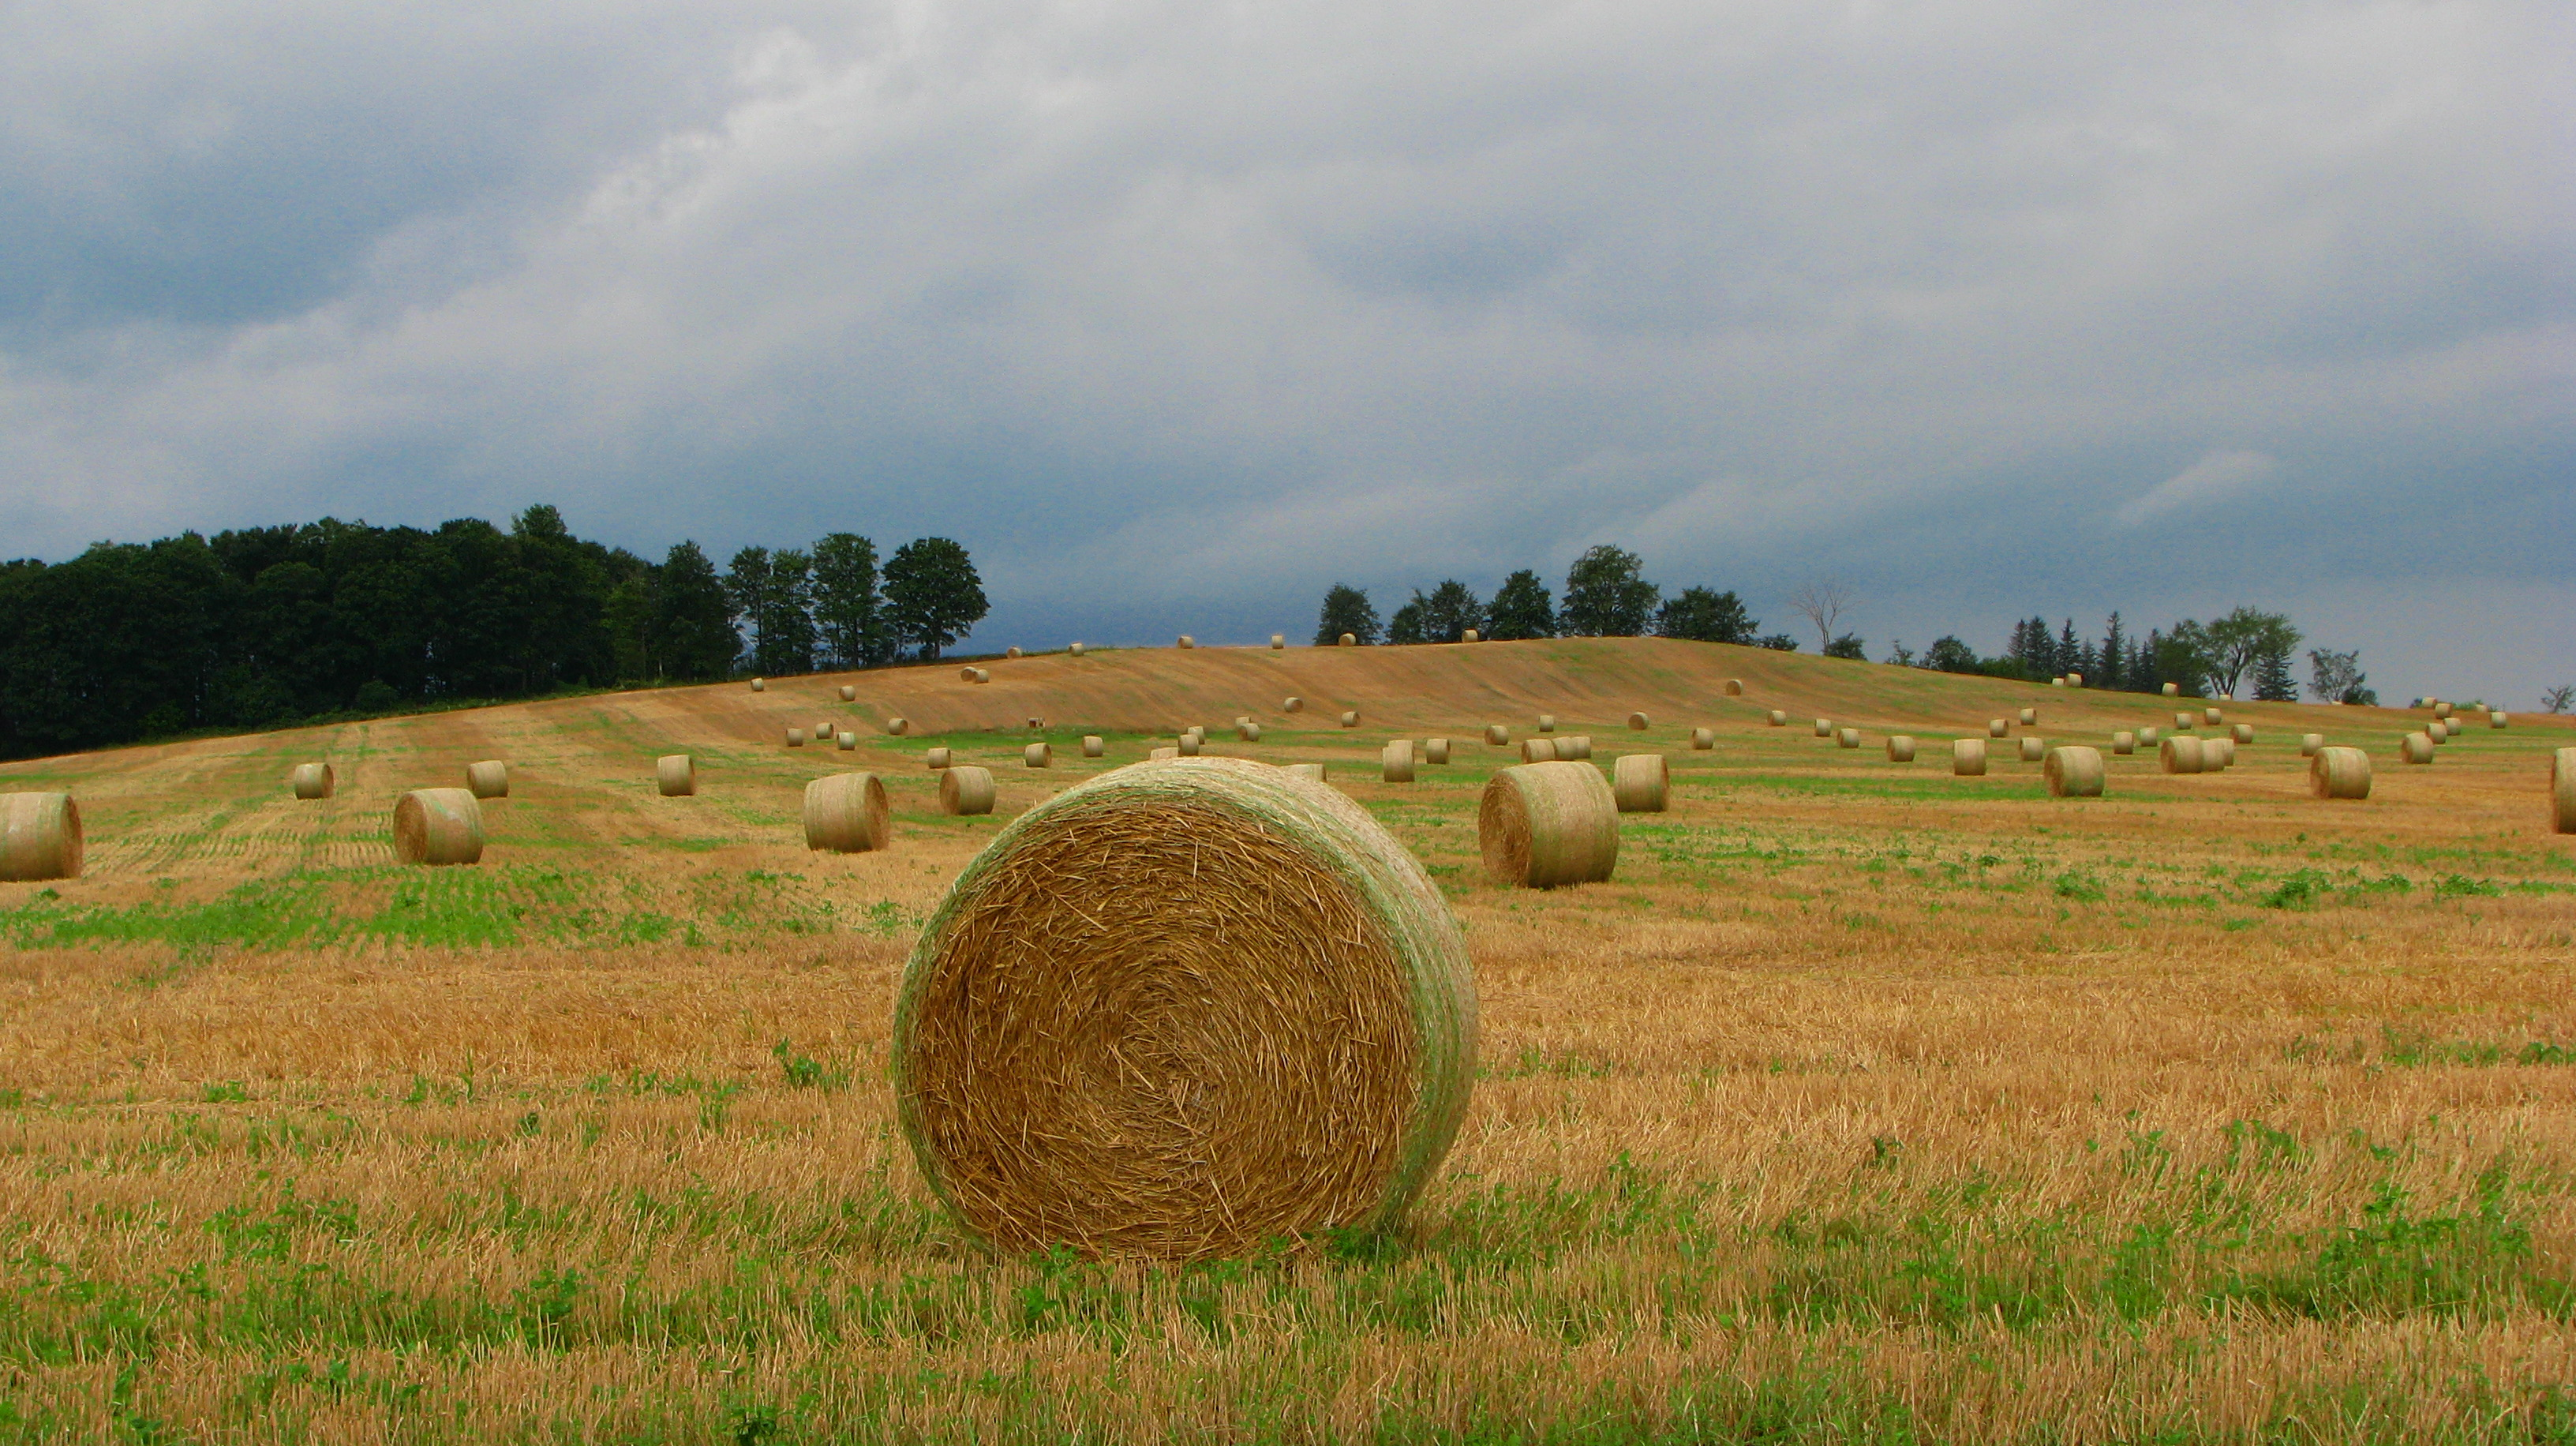 Straw bales on a stubble field in Alliston, Ontario.jpg